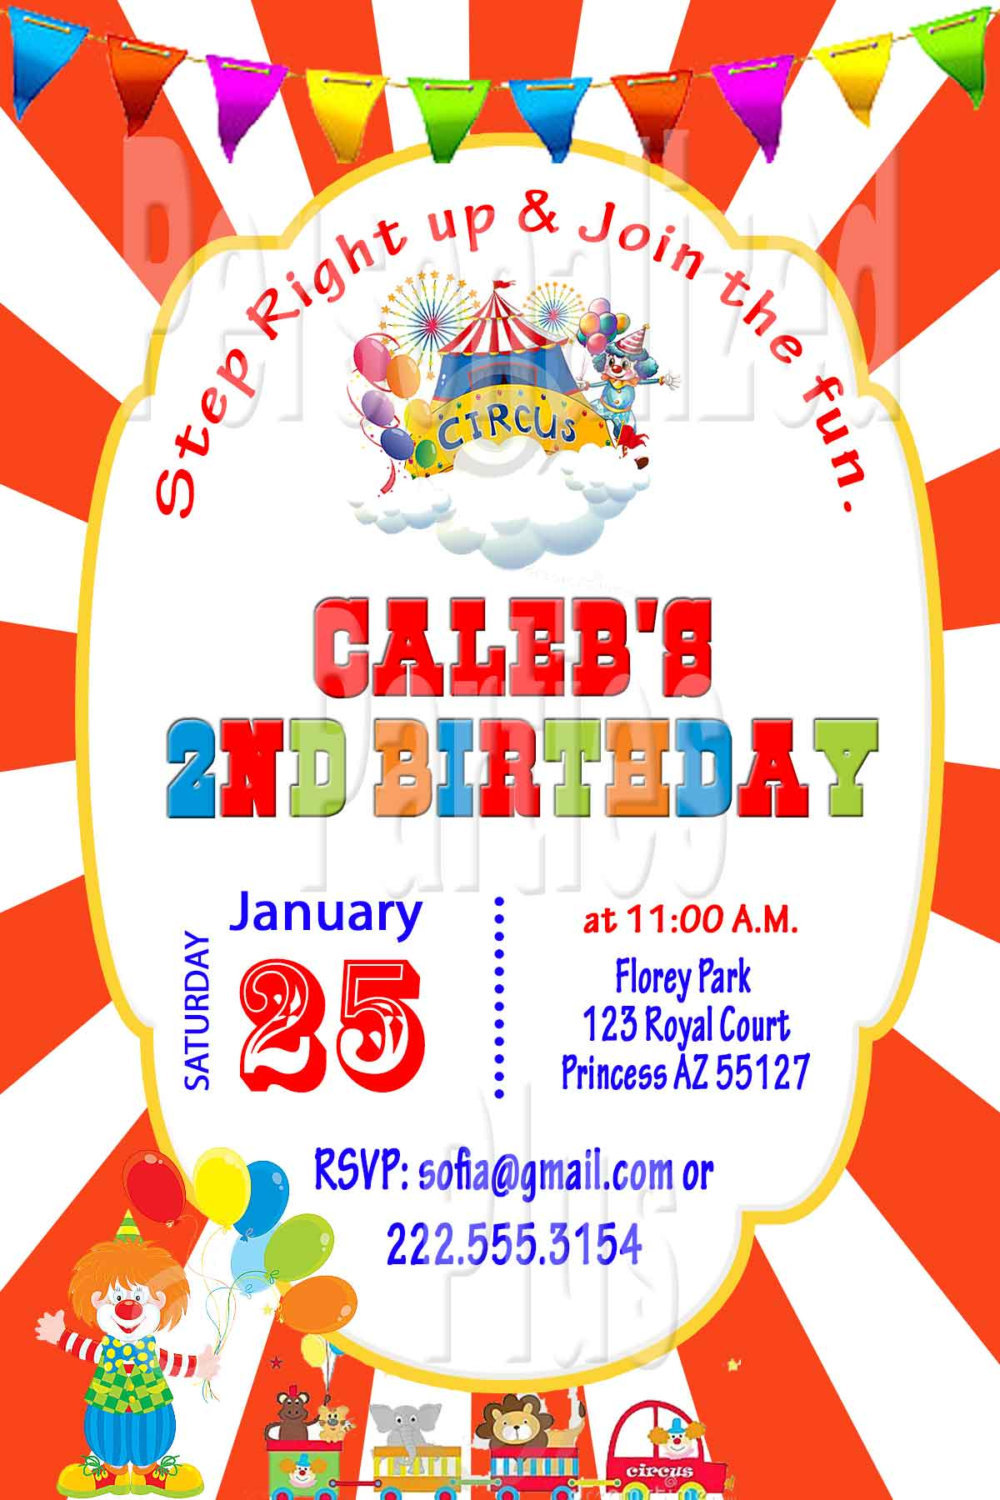 Circus style birthday Invitations: varous designs to choose from